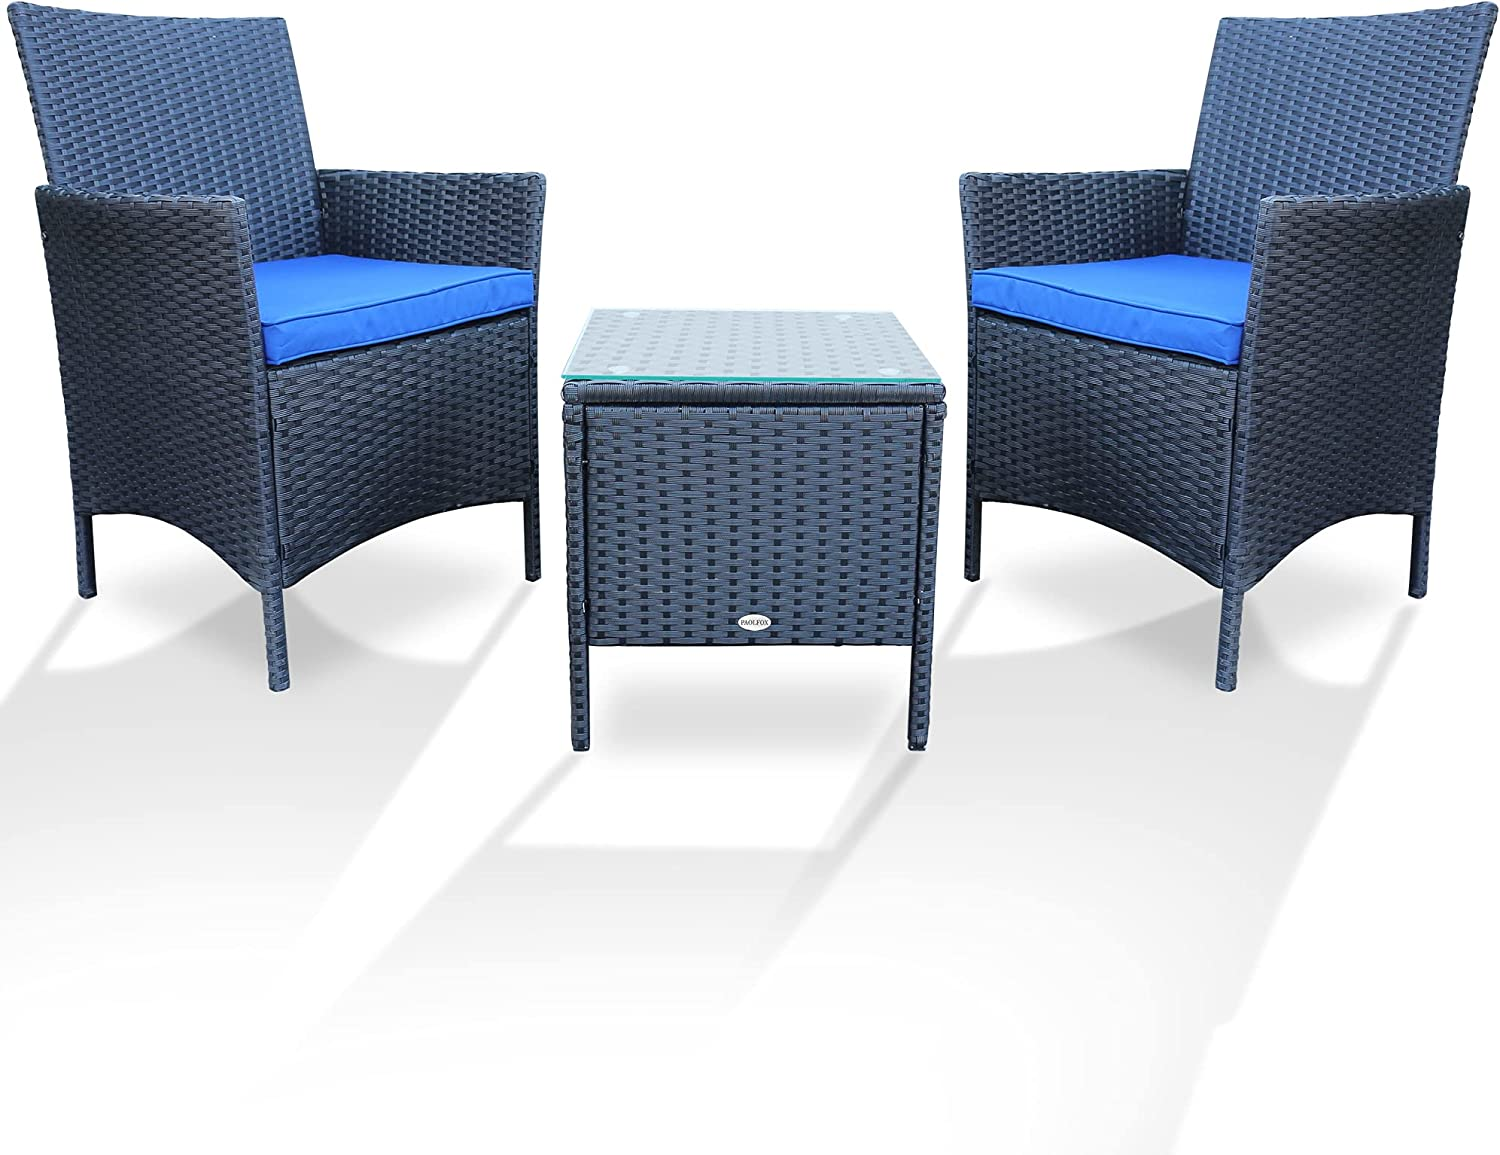 PAOLFOX Patio Conversation Furniture Sets 3pcs PE Rattan Wicker Chairs w/Table Outdoor Garden Sofa Washable Cushion & Tempered Glass Table top for Garden Poolside Balcony (Black Sets + Blue Cushion)